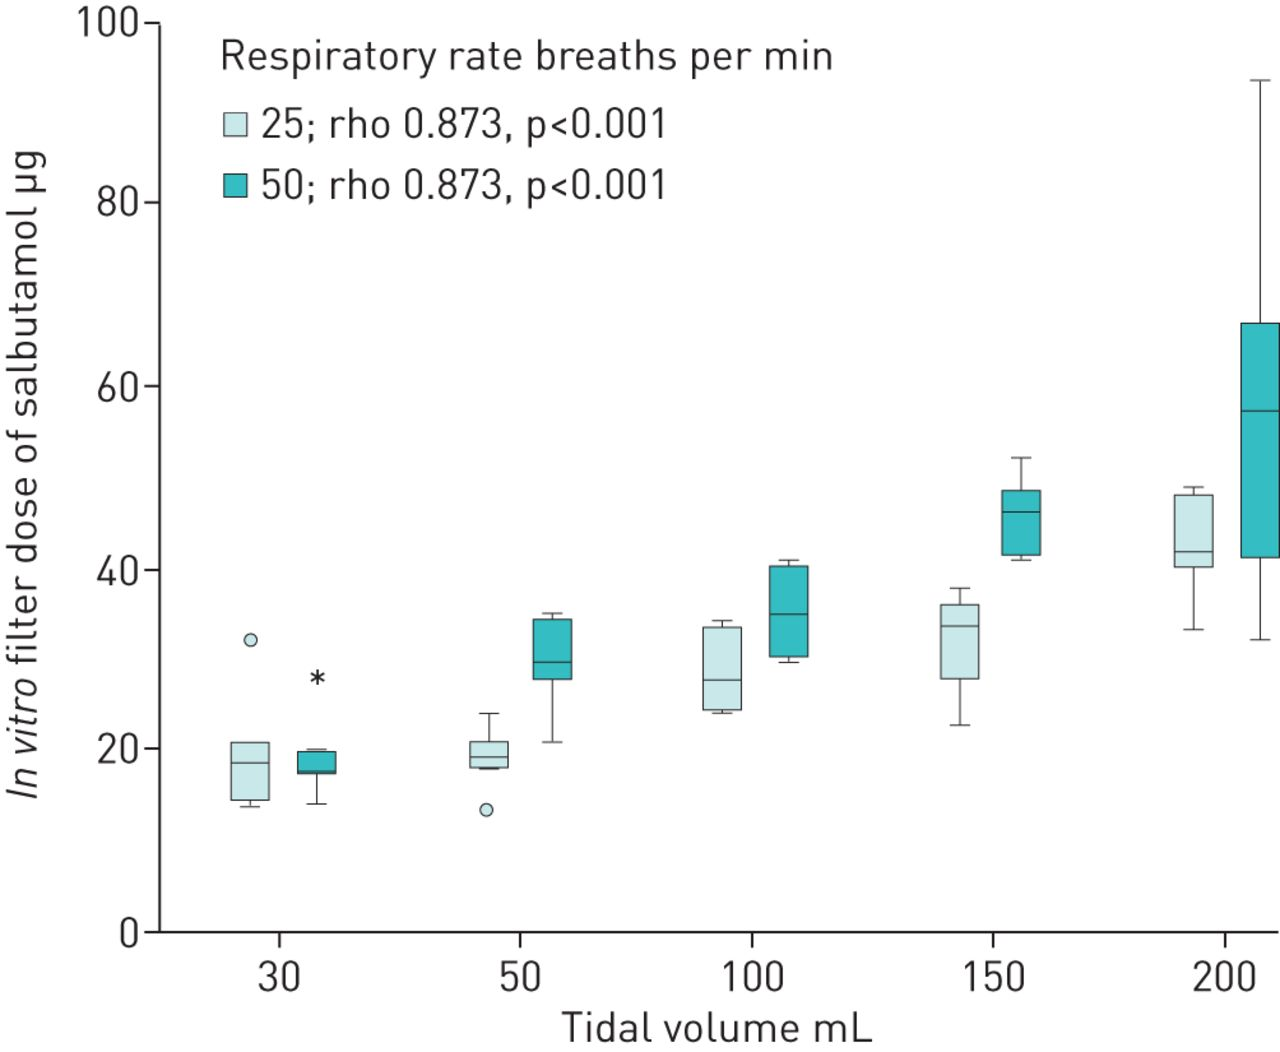 Valved holding chamber drug delivery is dependent on breathing